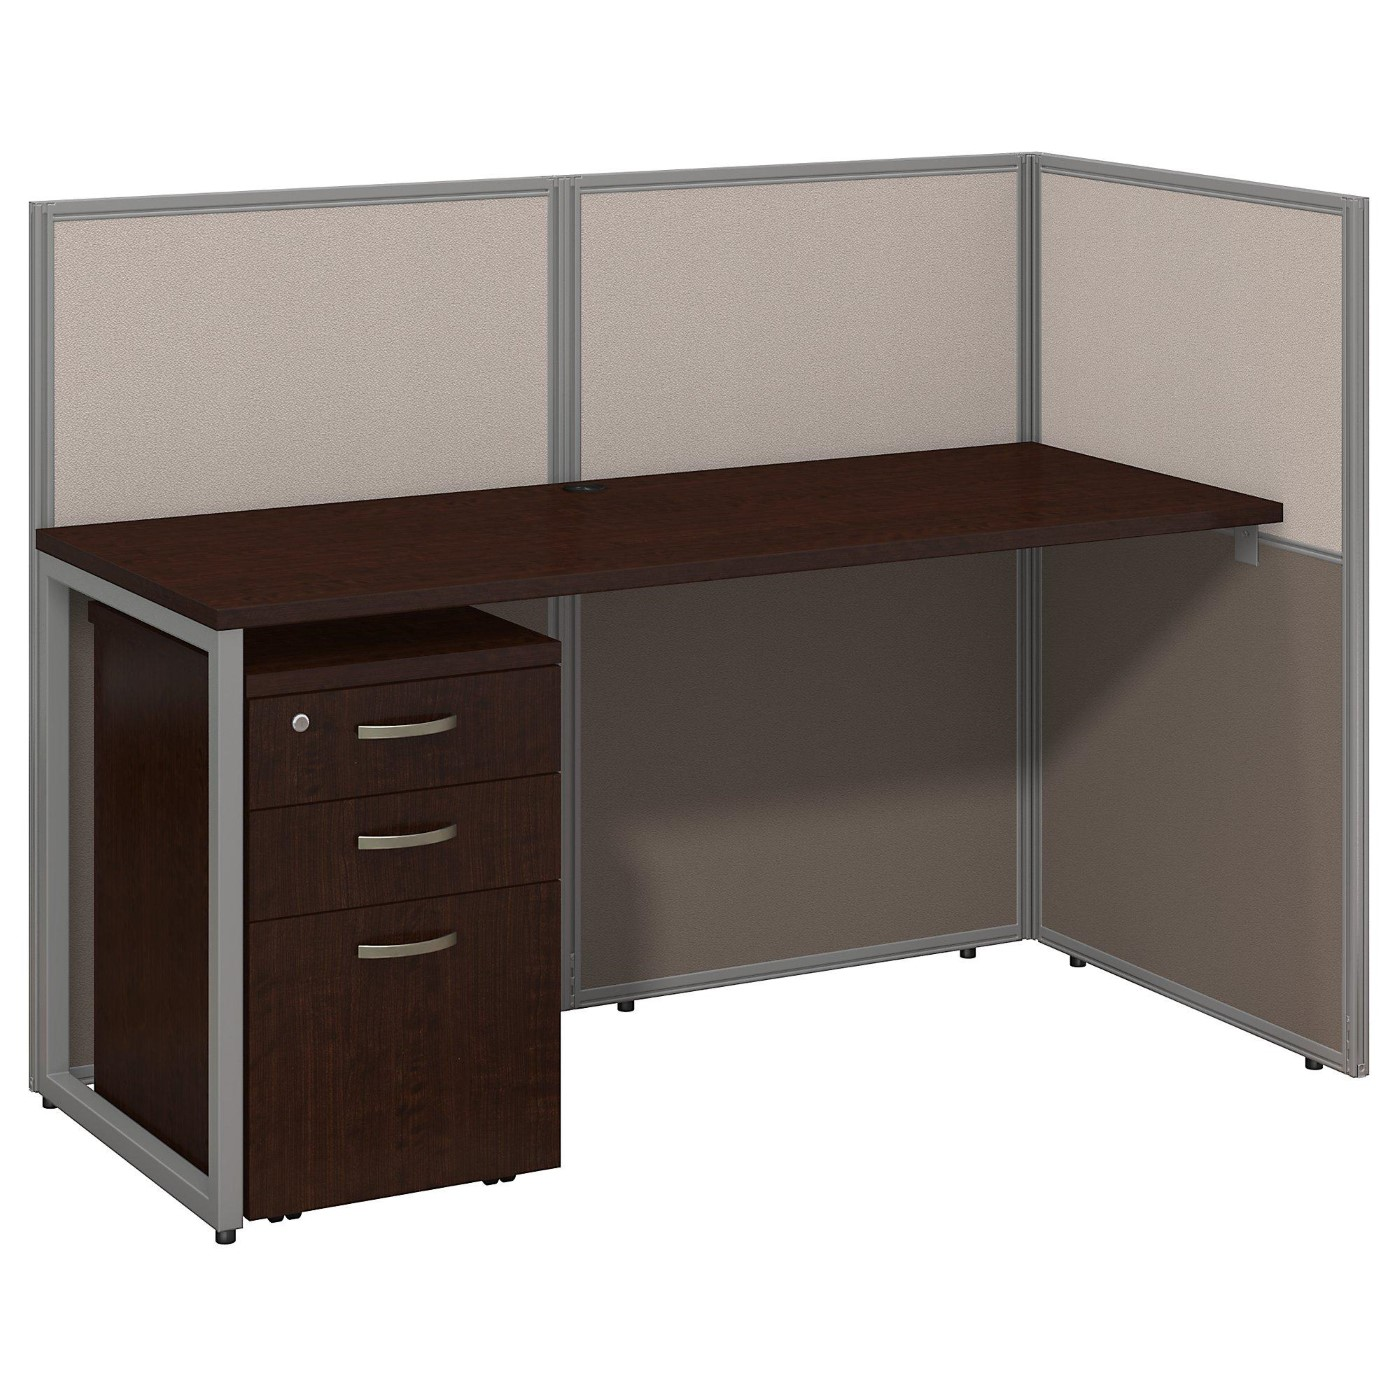 BUSH BUSINESS FURNITURE EASY OFFICE 60W STRAIGHT DESK OPEN OFFICE WITH MOBILE FILE CABINET. FREE SHIPPING  VIDEO BELOW.